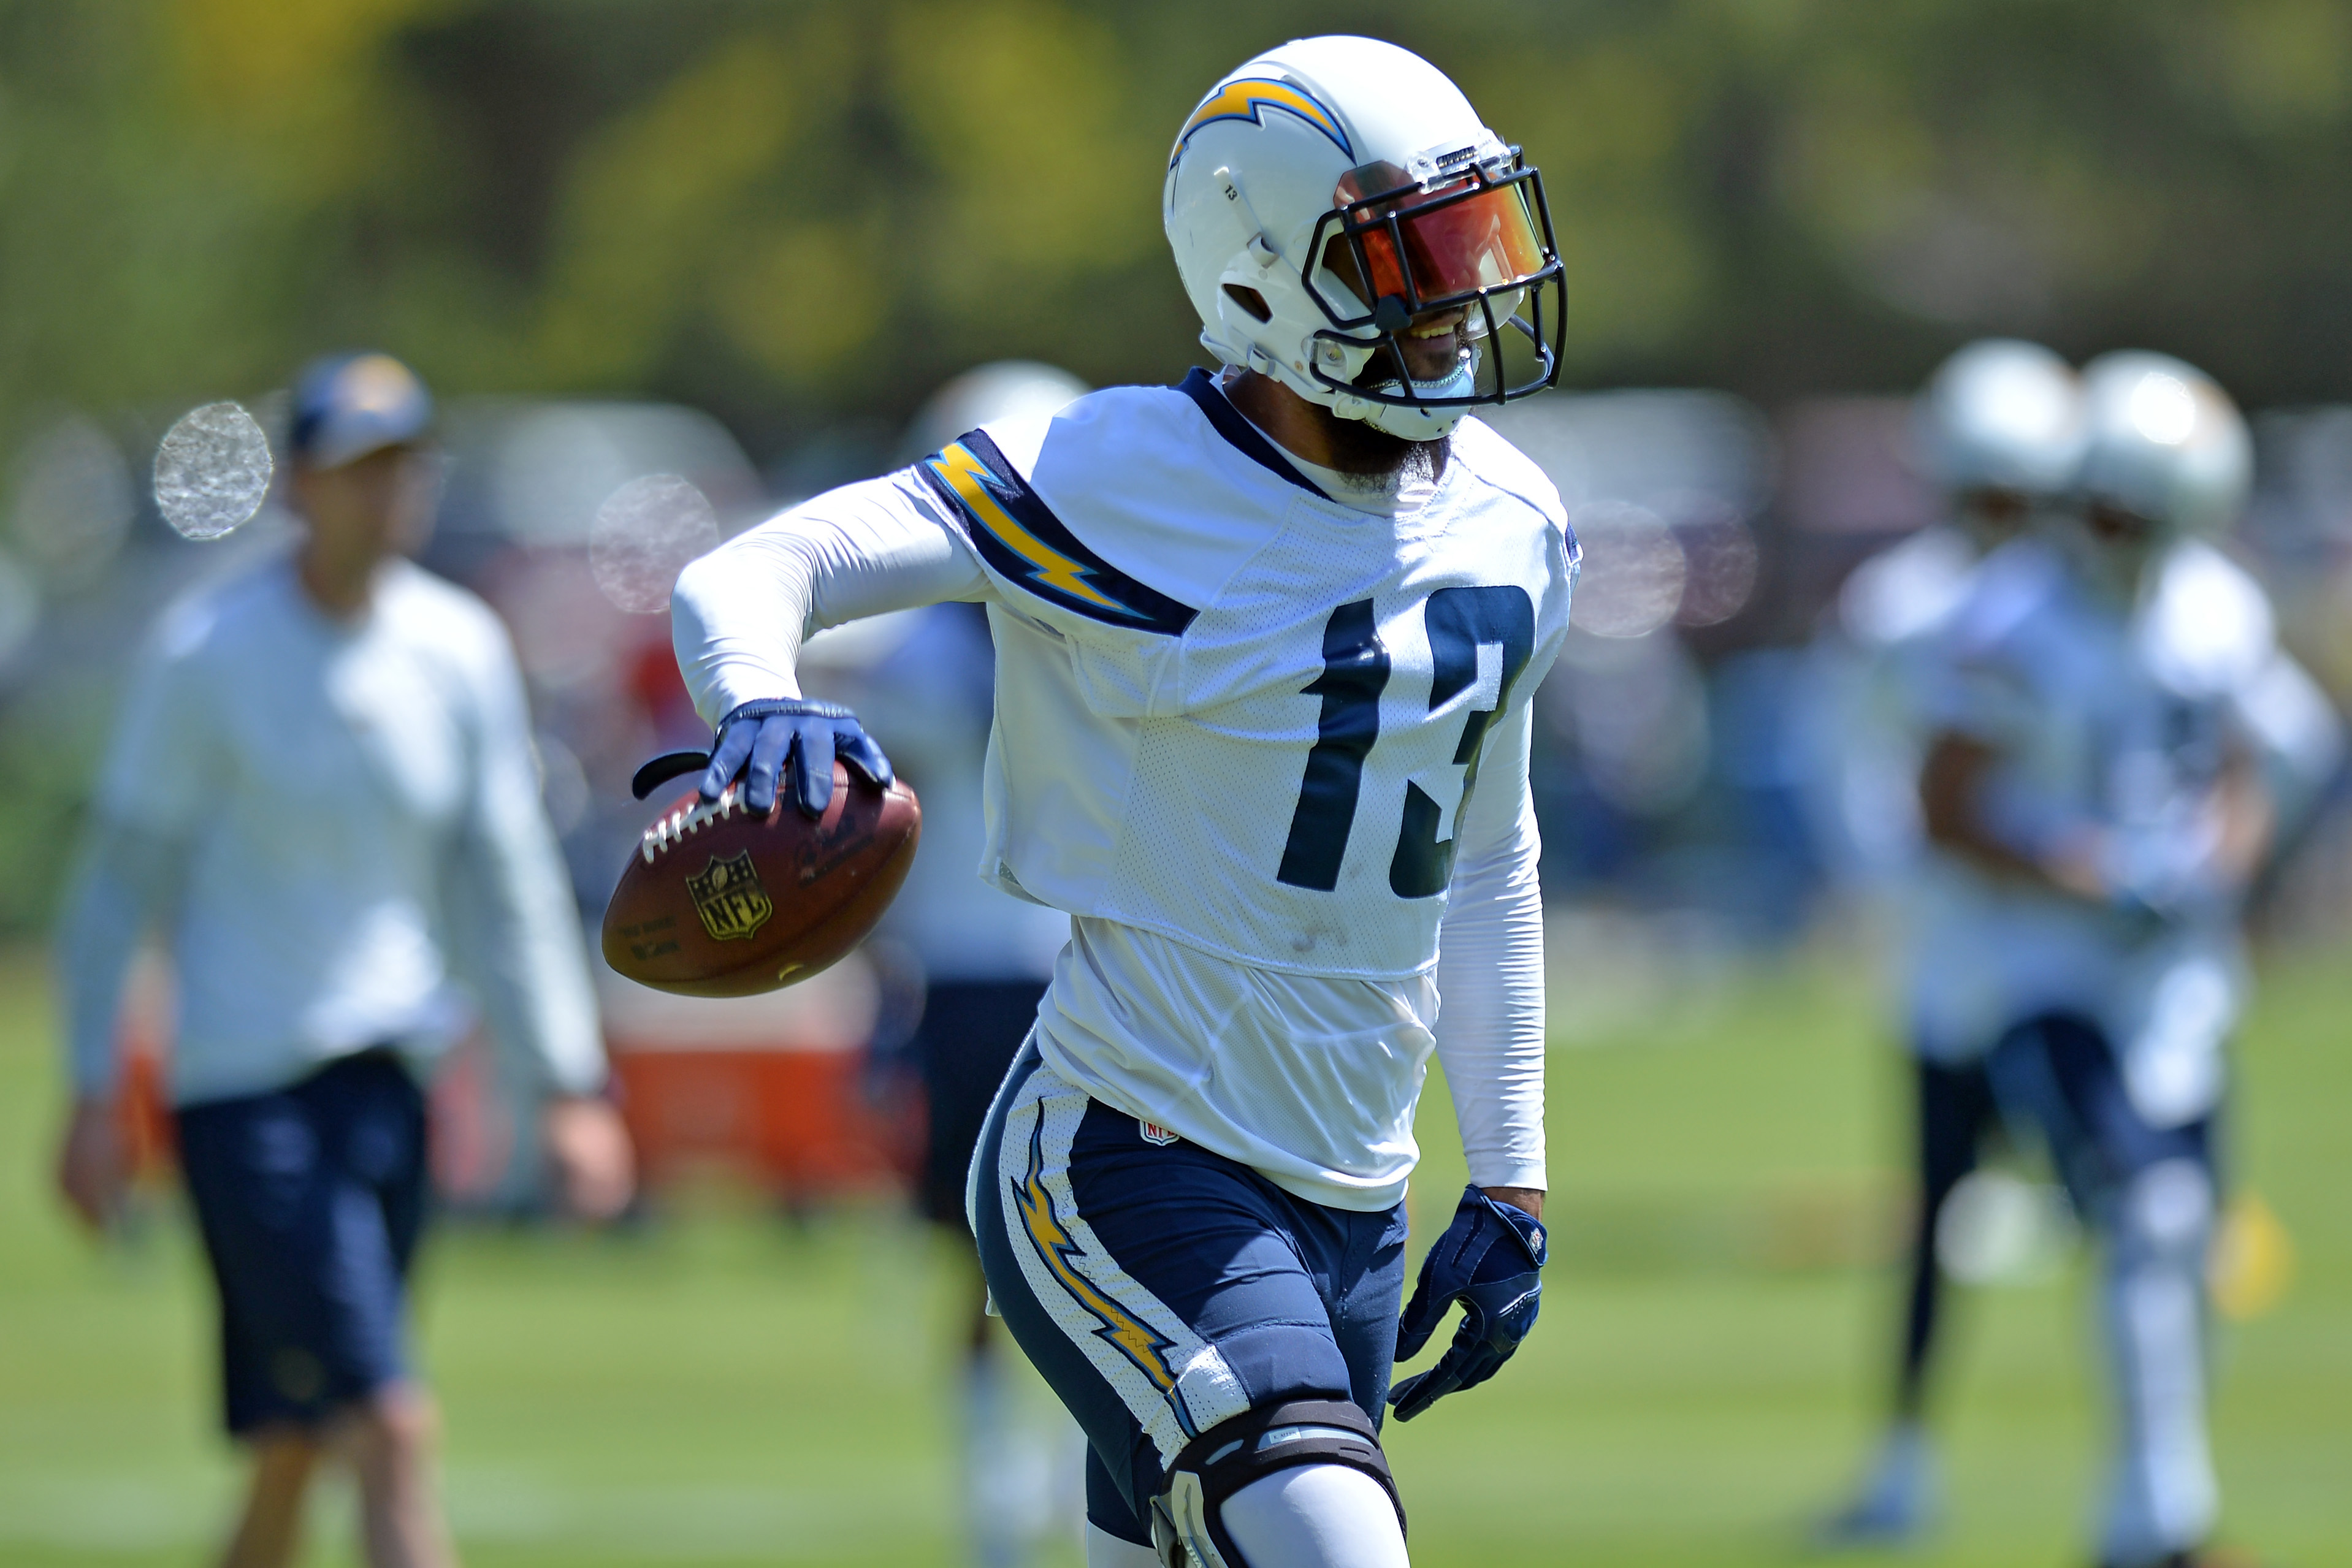 10107576-nfl-los-angeles-chargers-minicamp